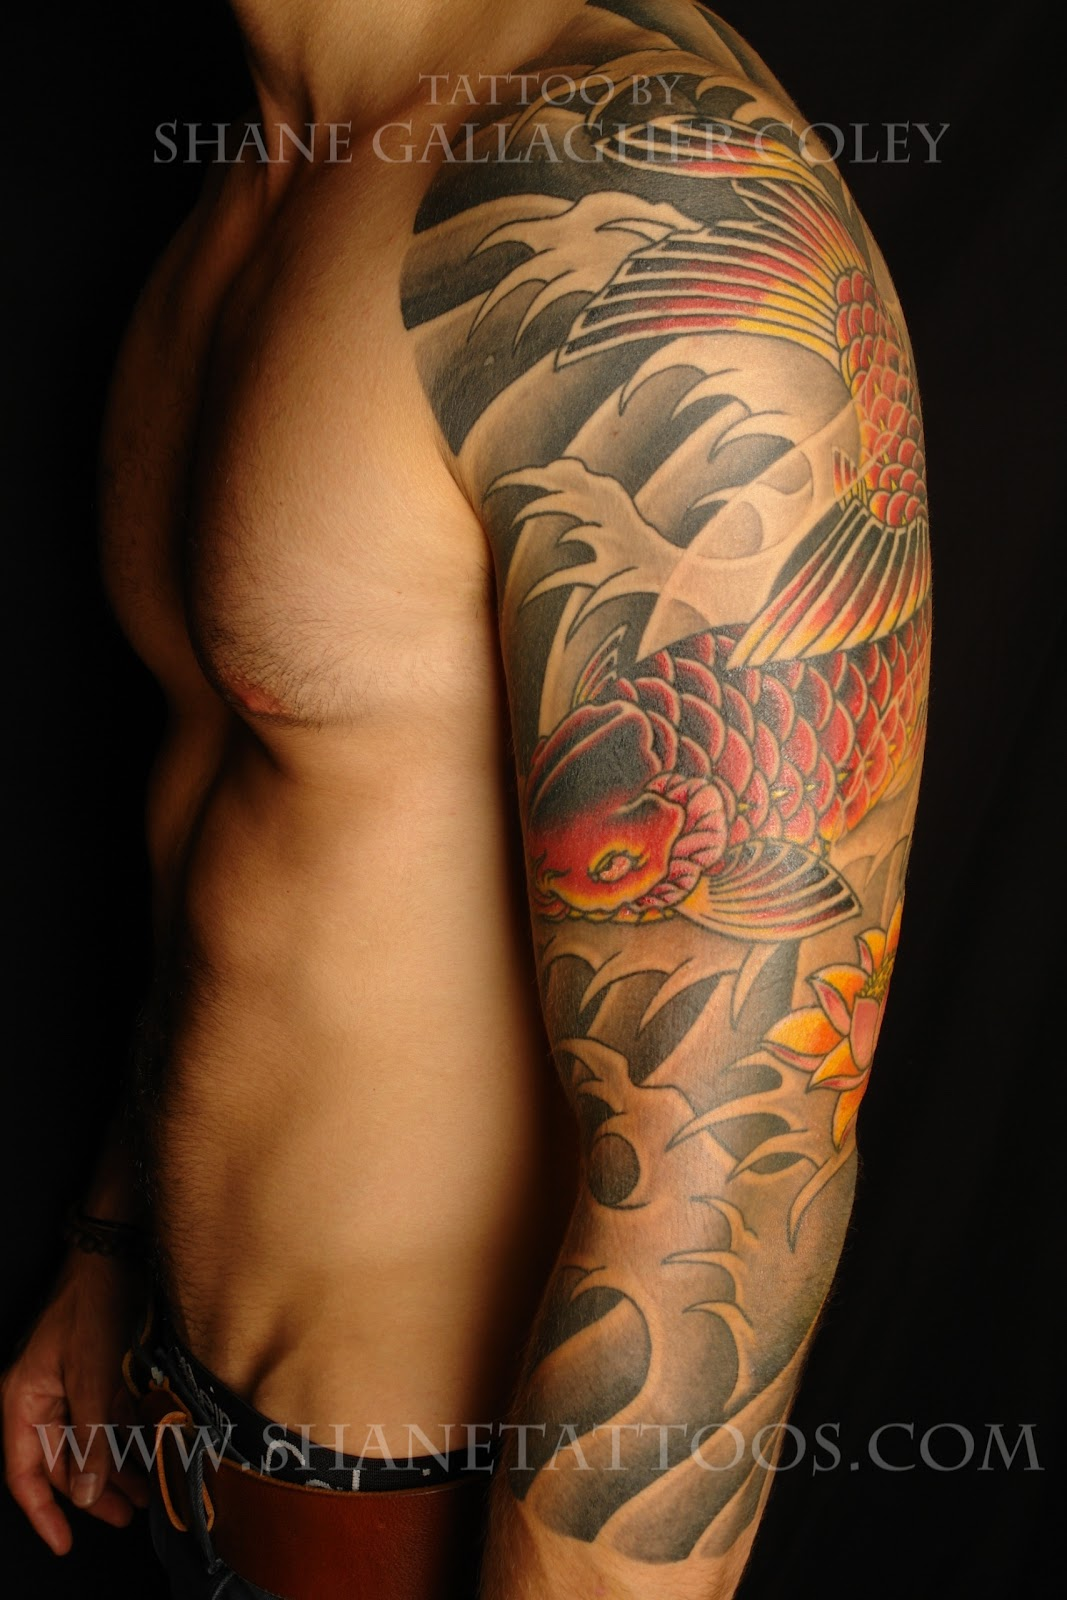 shane tattoos japanese koi 3 4 sleeve tattoo on shaydon. Black Bedroom Furniture Sets. Home Design Ideas